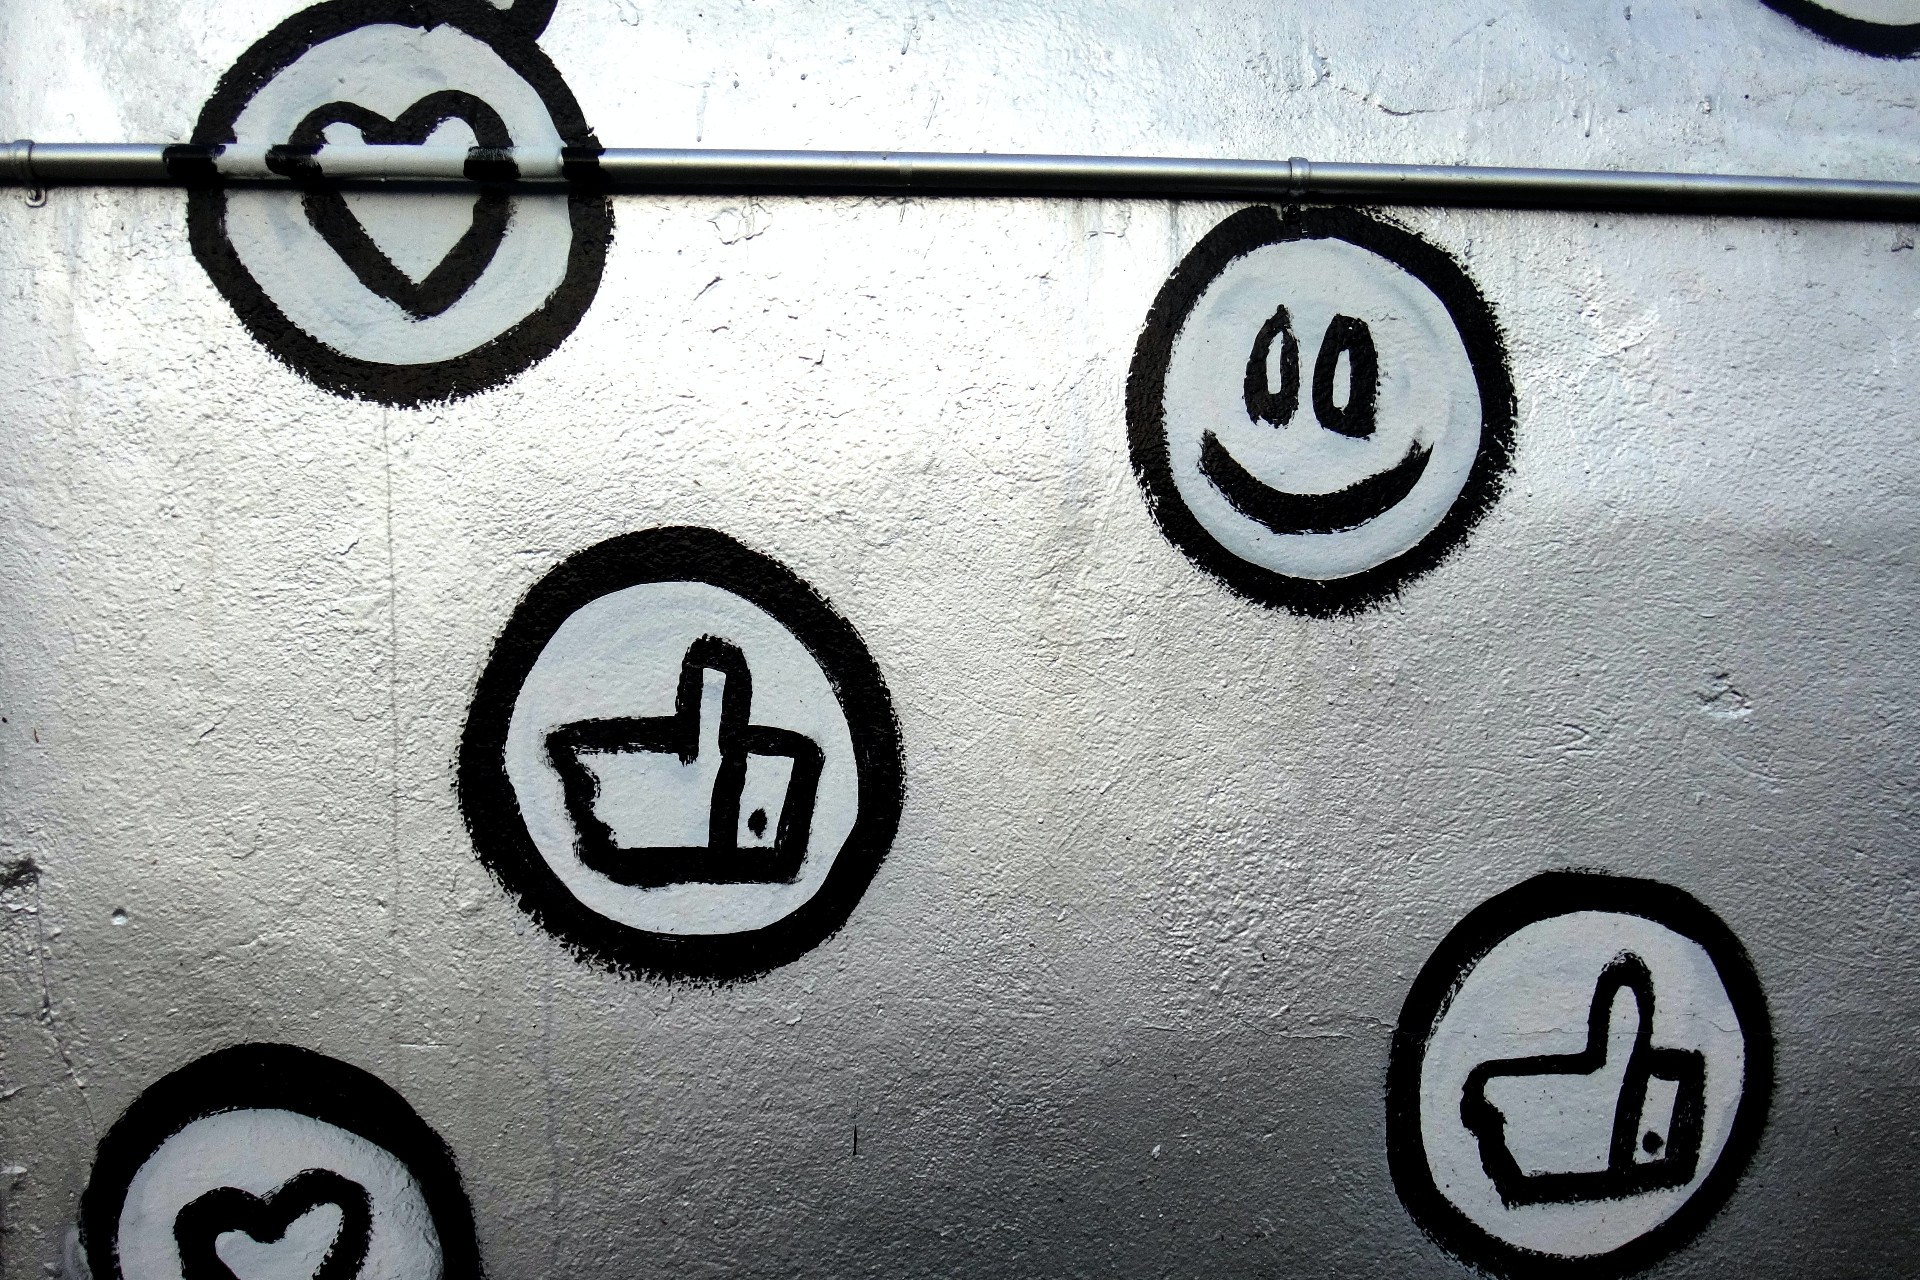 thumbs up, smiley face, and heart symbols painted on a metal background